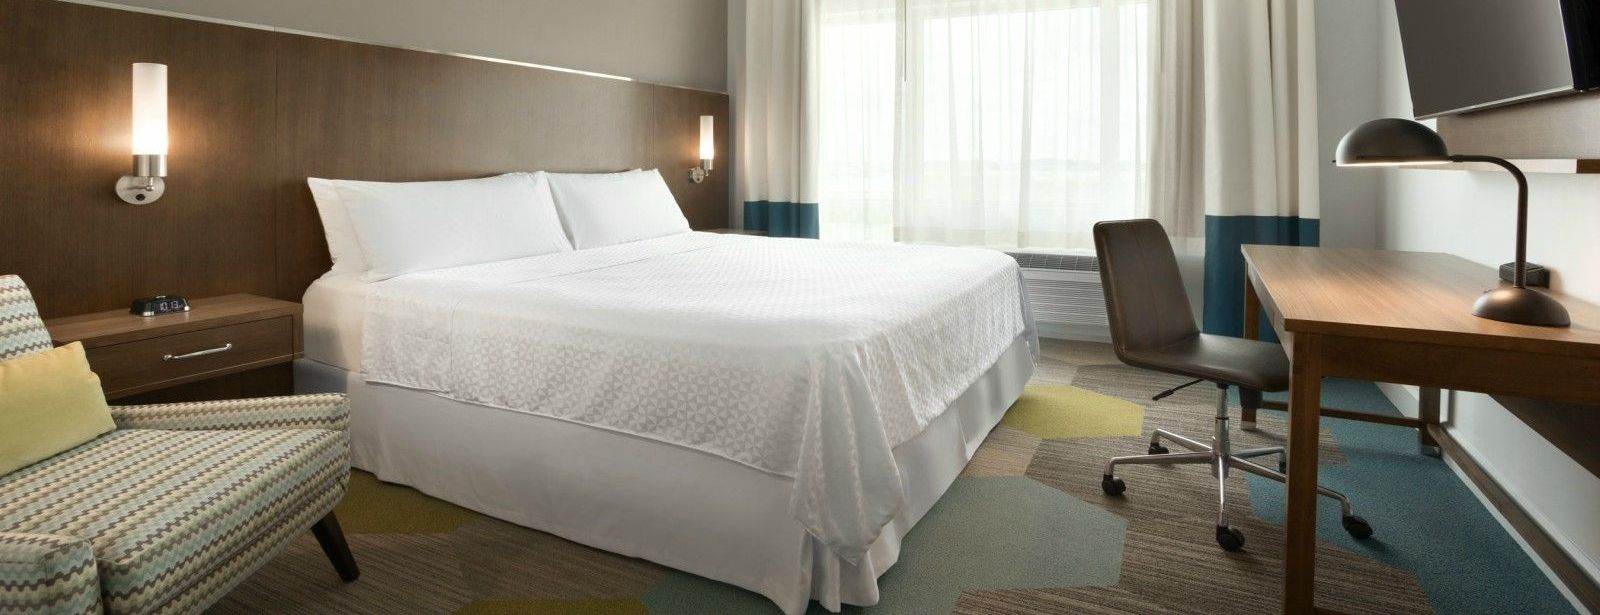 Miami Airport Accommodations - Traditional King Guest Room